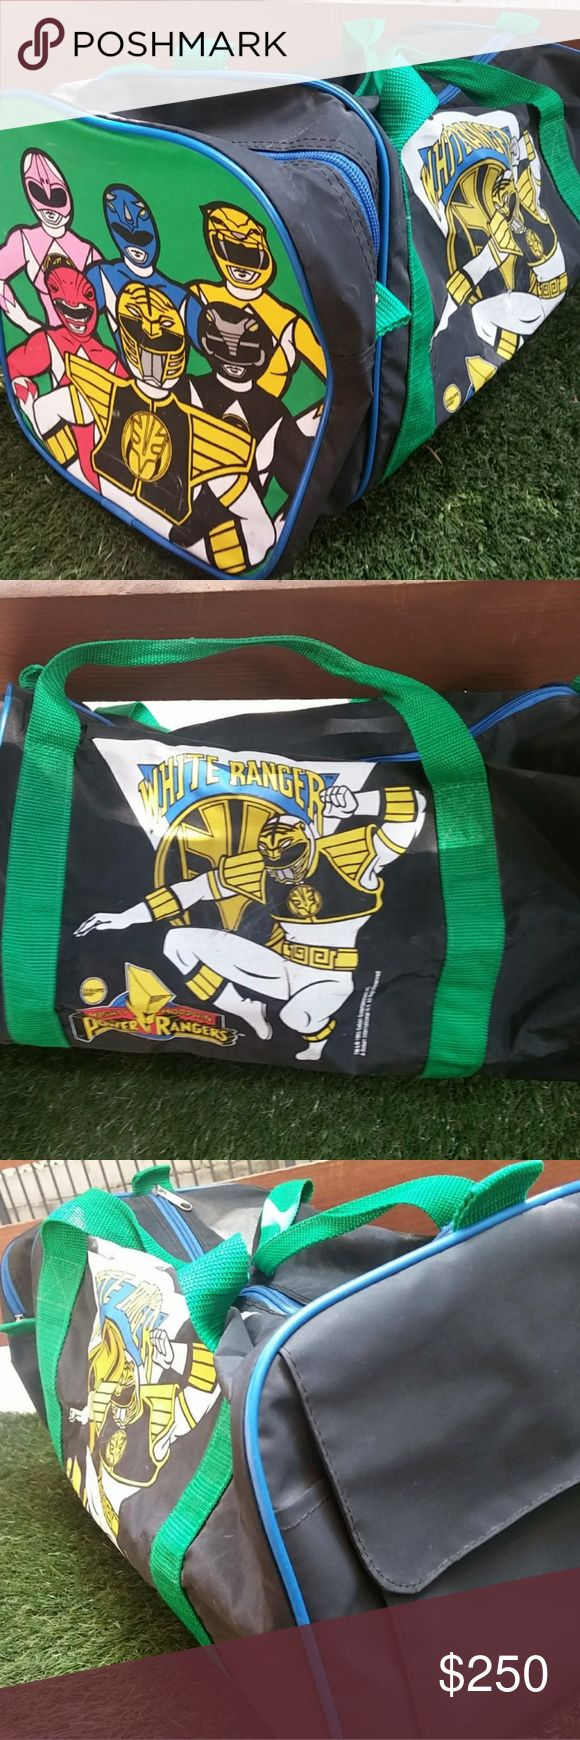 Vintage 1995 Power Rangers Duffel Bag by SABAN Ent Officially licensed by 1995 SABAN Entertainment, this is a Power Rangers duffel bag. It features a White Ranger on its main zipper side, and the rest of the colorful Power rangers crew on its side pockets. This one in particular has 2 zippers and one velcro pocket. ALL zippers and pockets are fully functional. Very minimal fading. Normal wear and tear on inside. Might of been a kids gym bag. Amazing conversation piece. Overall good…